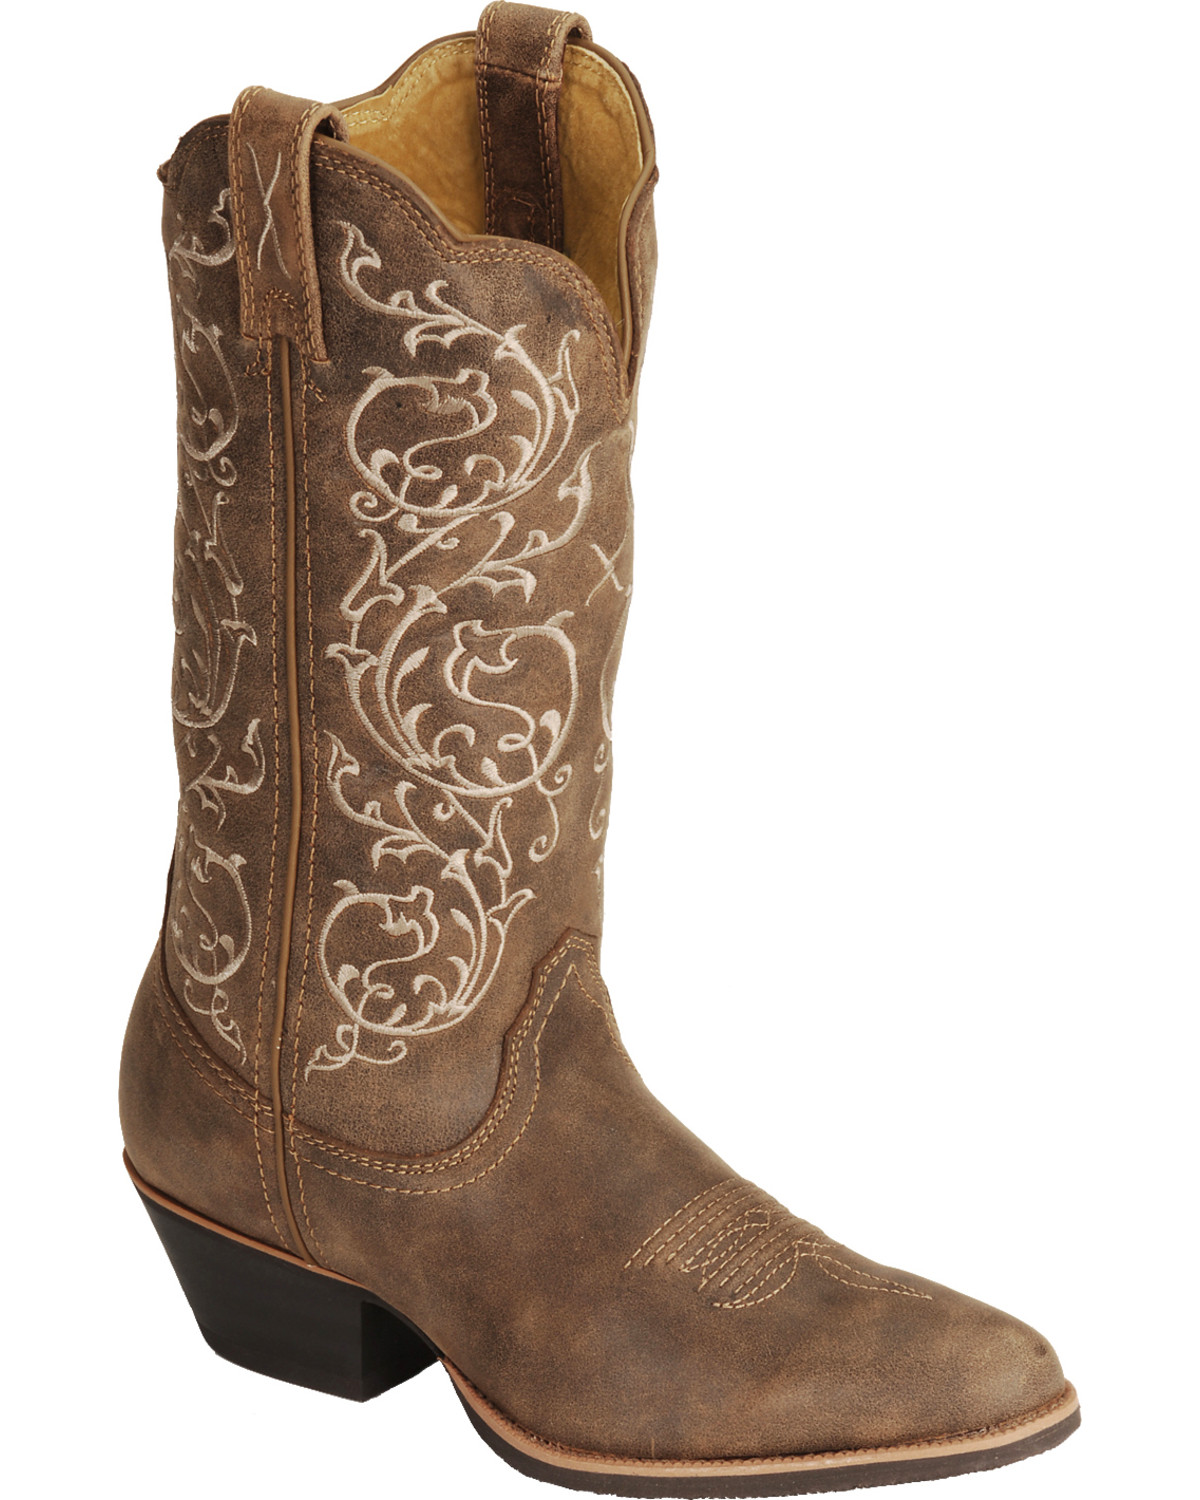 Discount Cowgirl Boots